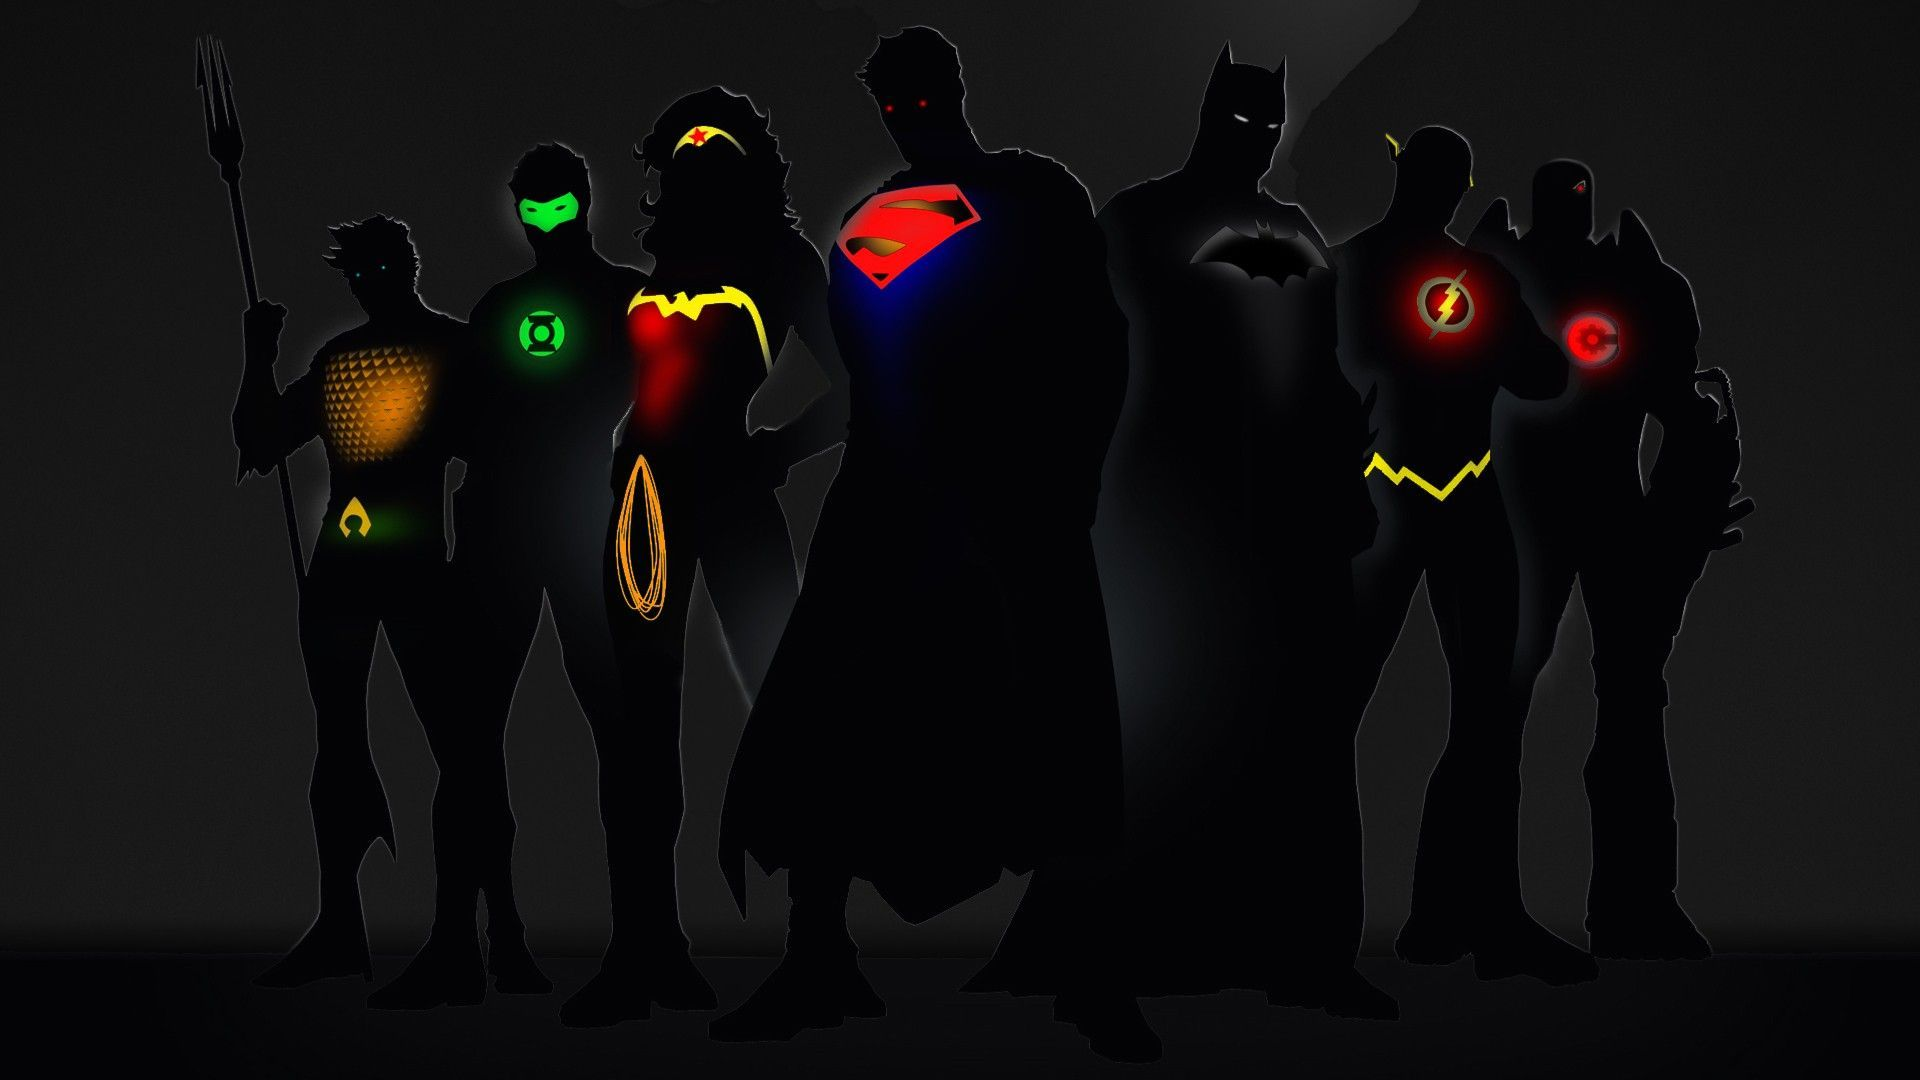 Hd wallpaper justice league - Find This Pin And More On Hd Wallpapers By Receptynakazhdyjden